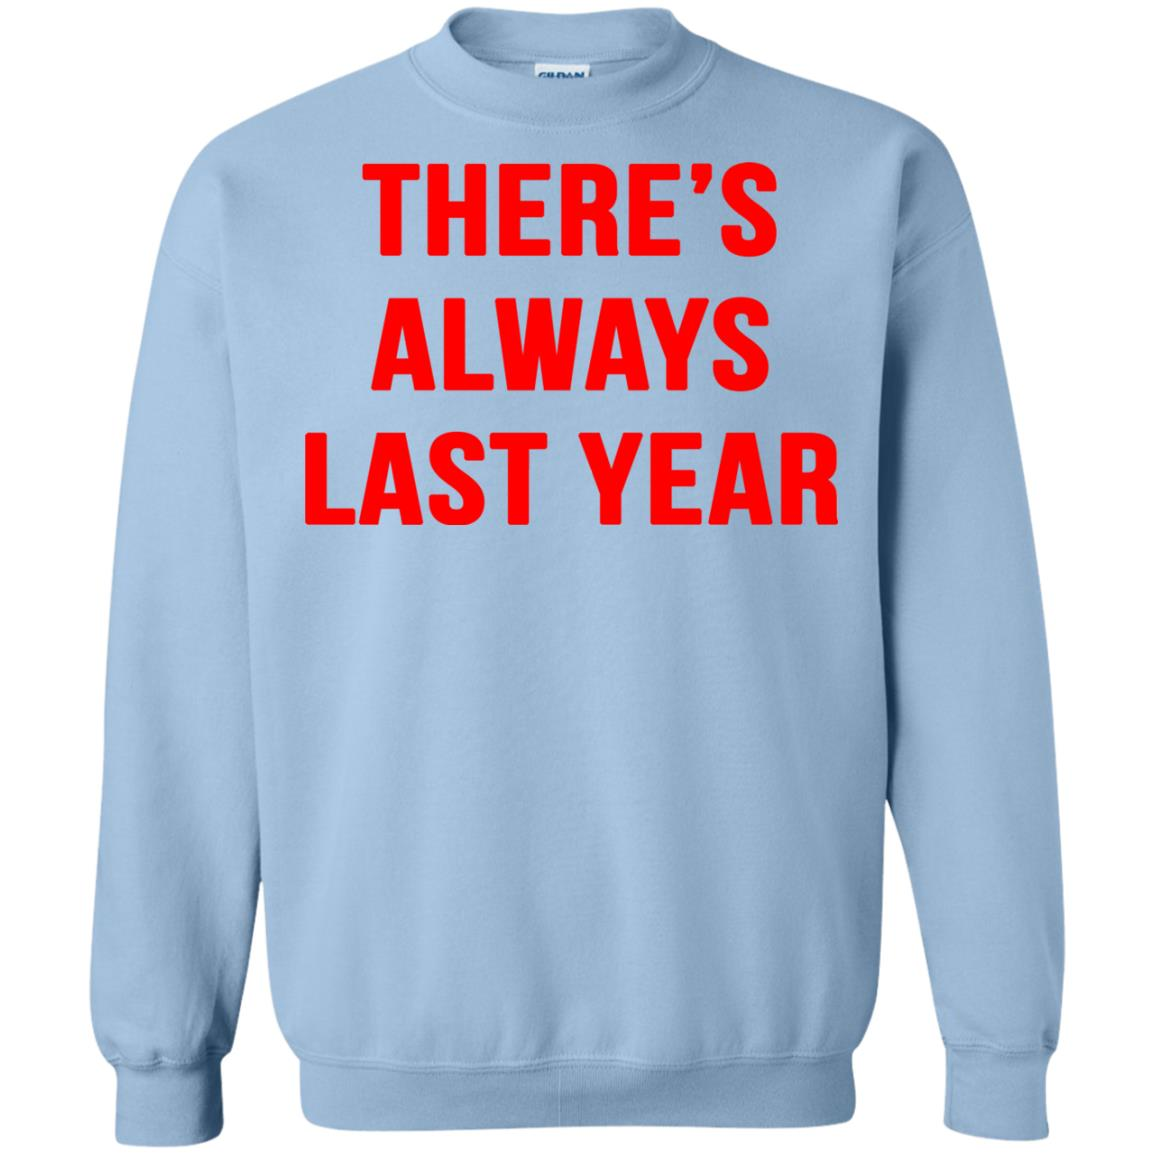 image 1923 - There's always last year t-shirt, long sleeve